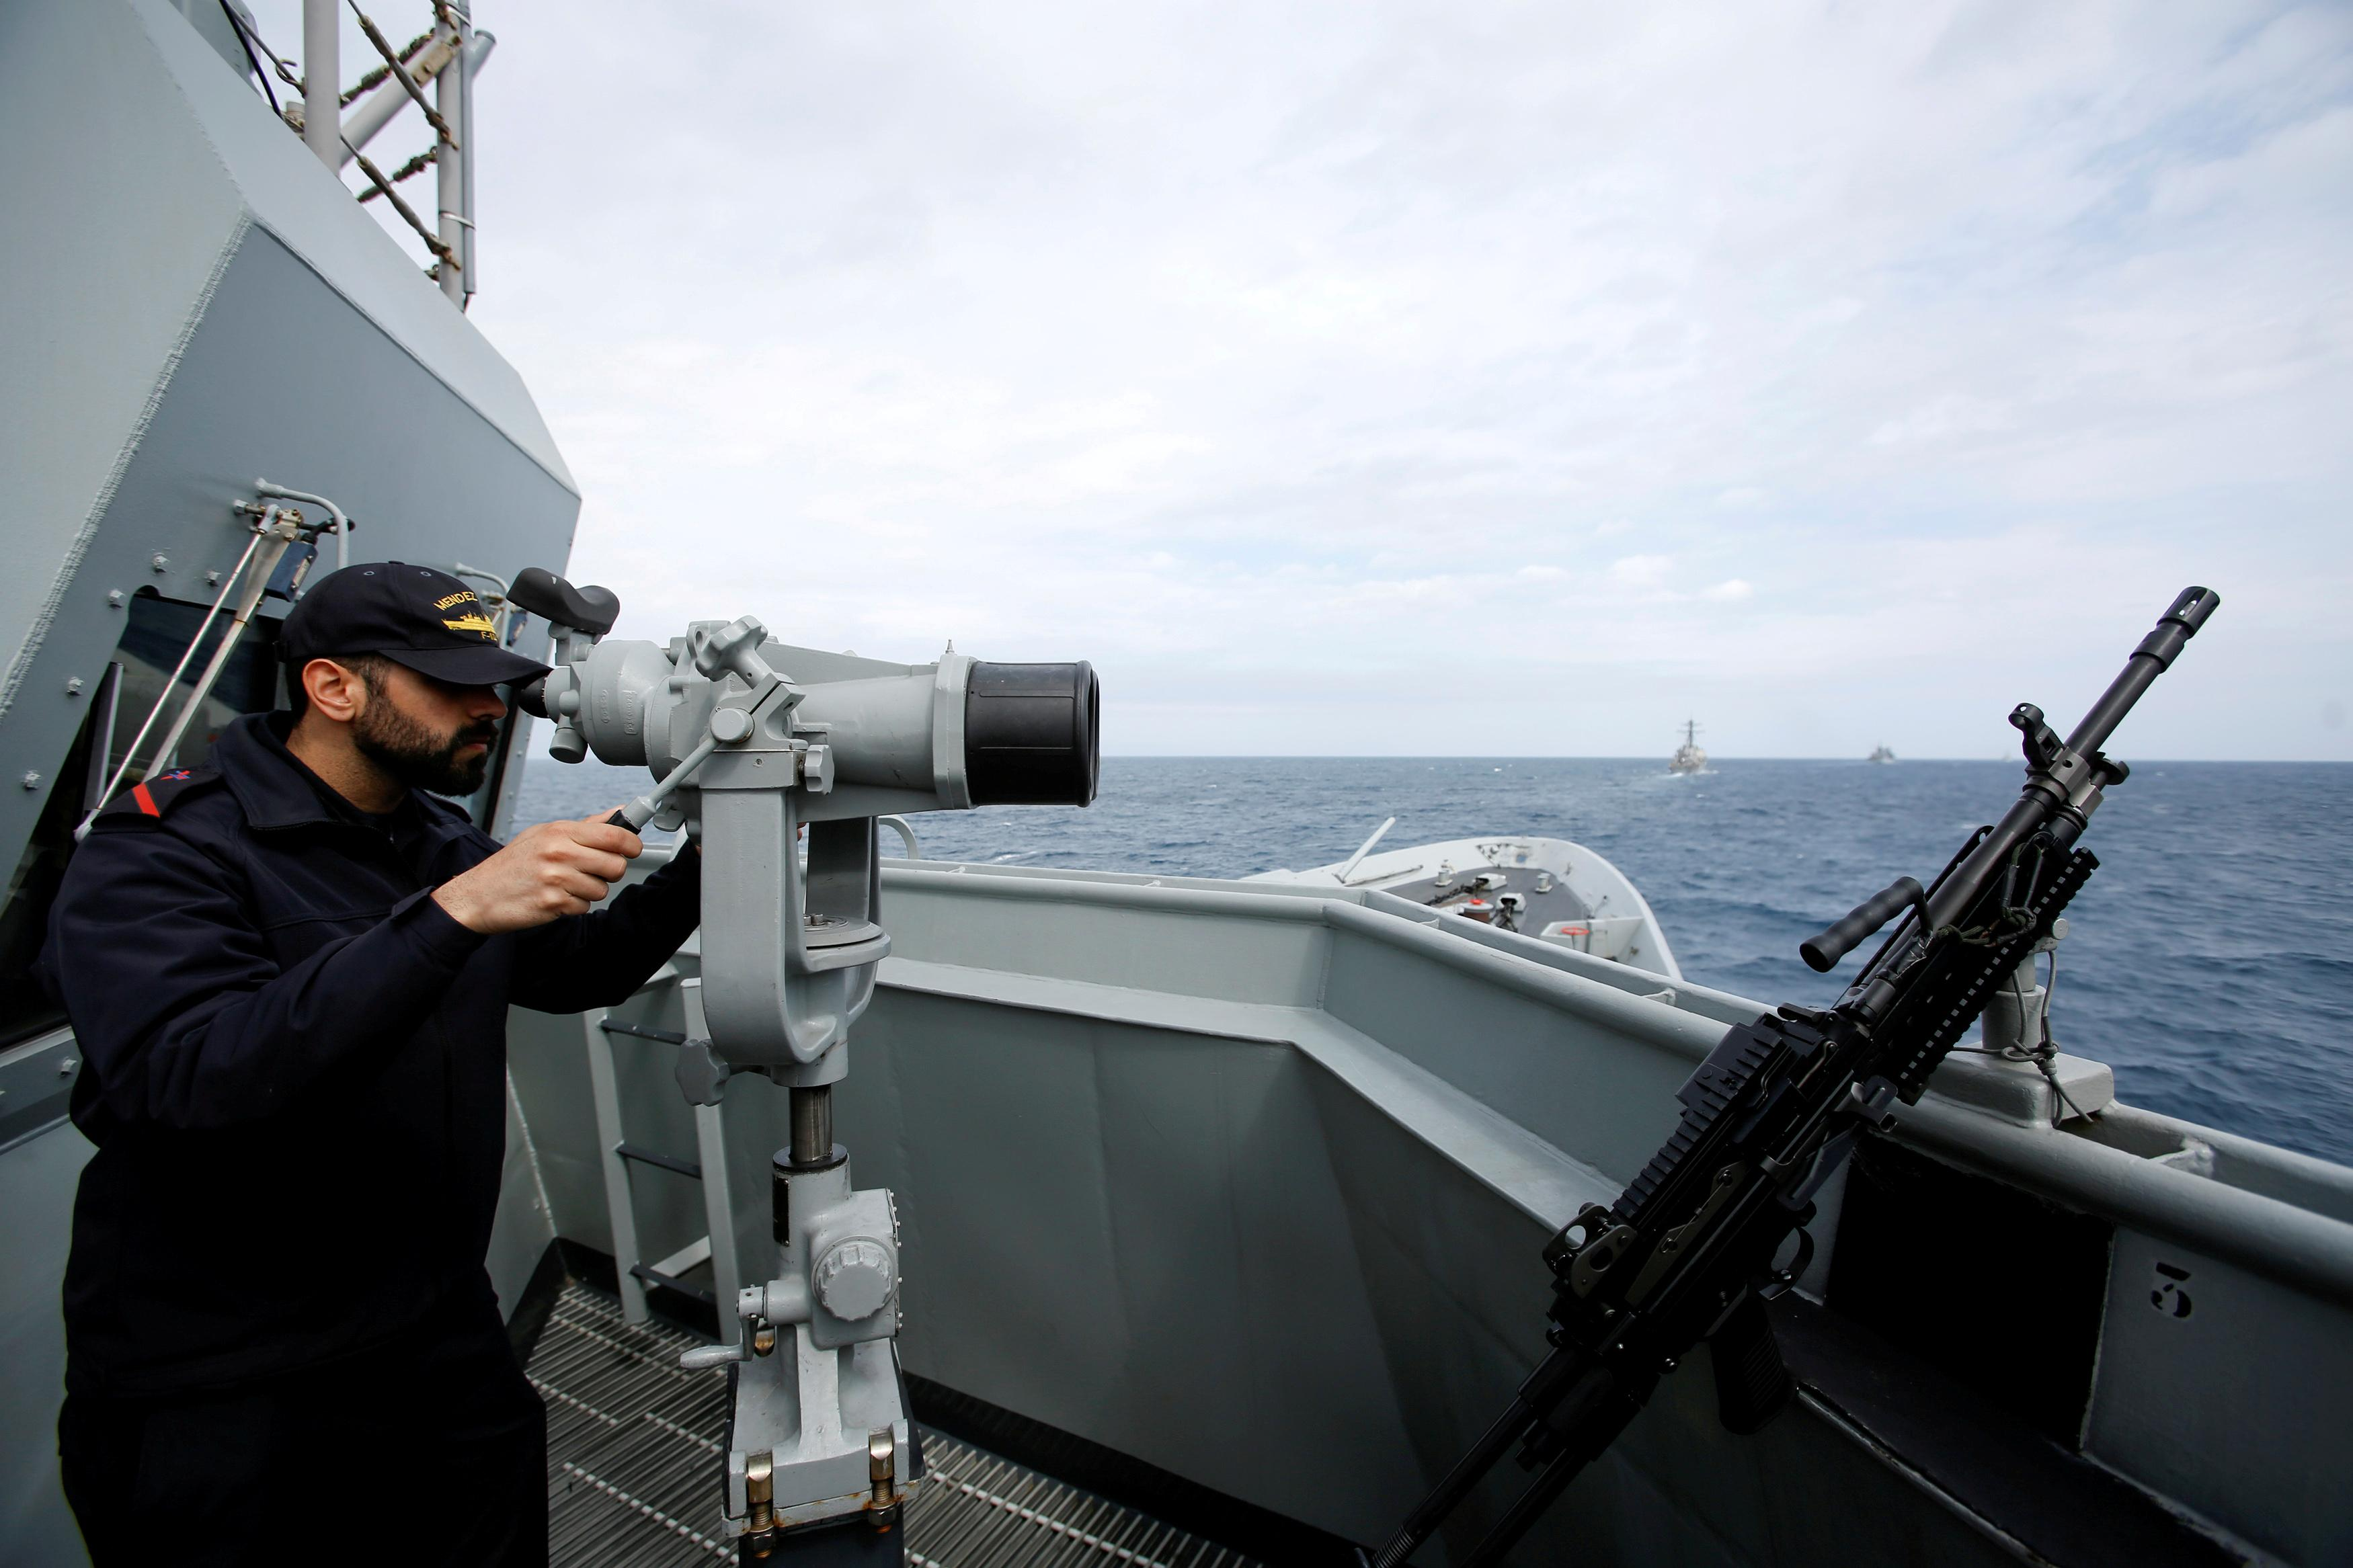 Spain pulls frigate from U.S. Gulf mission amid differences over Iran